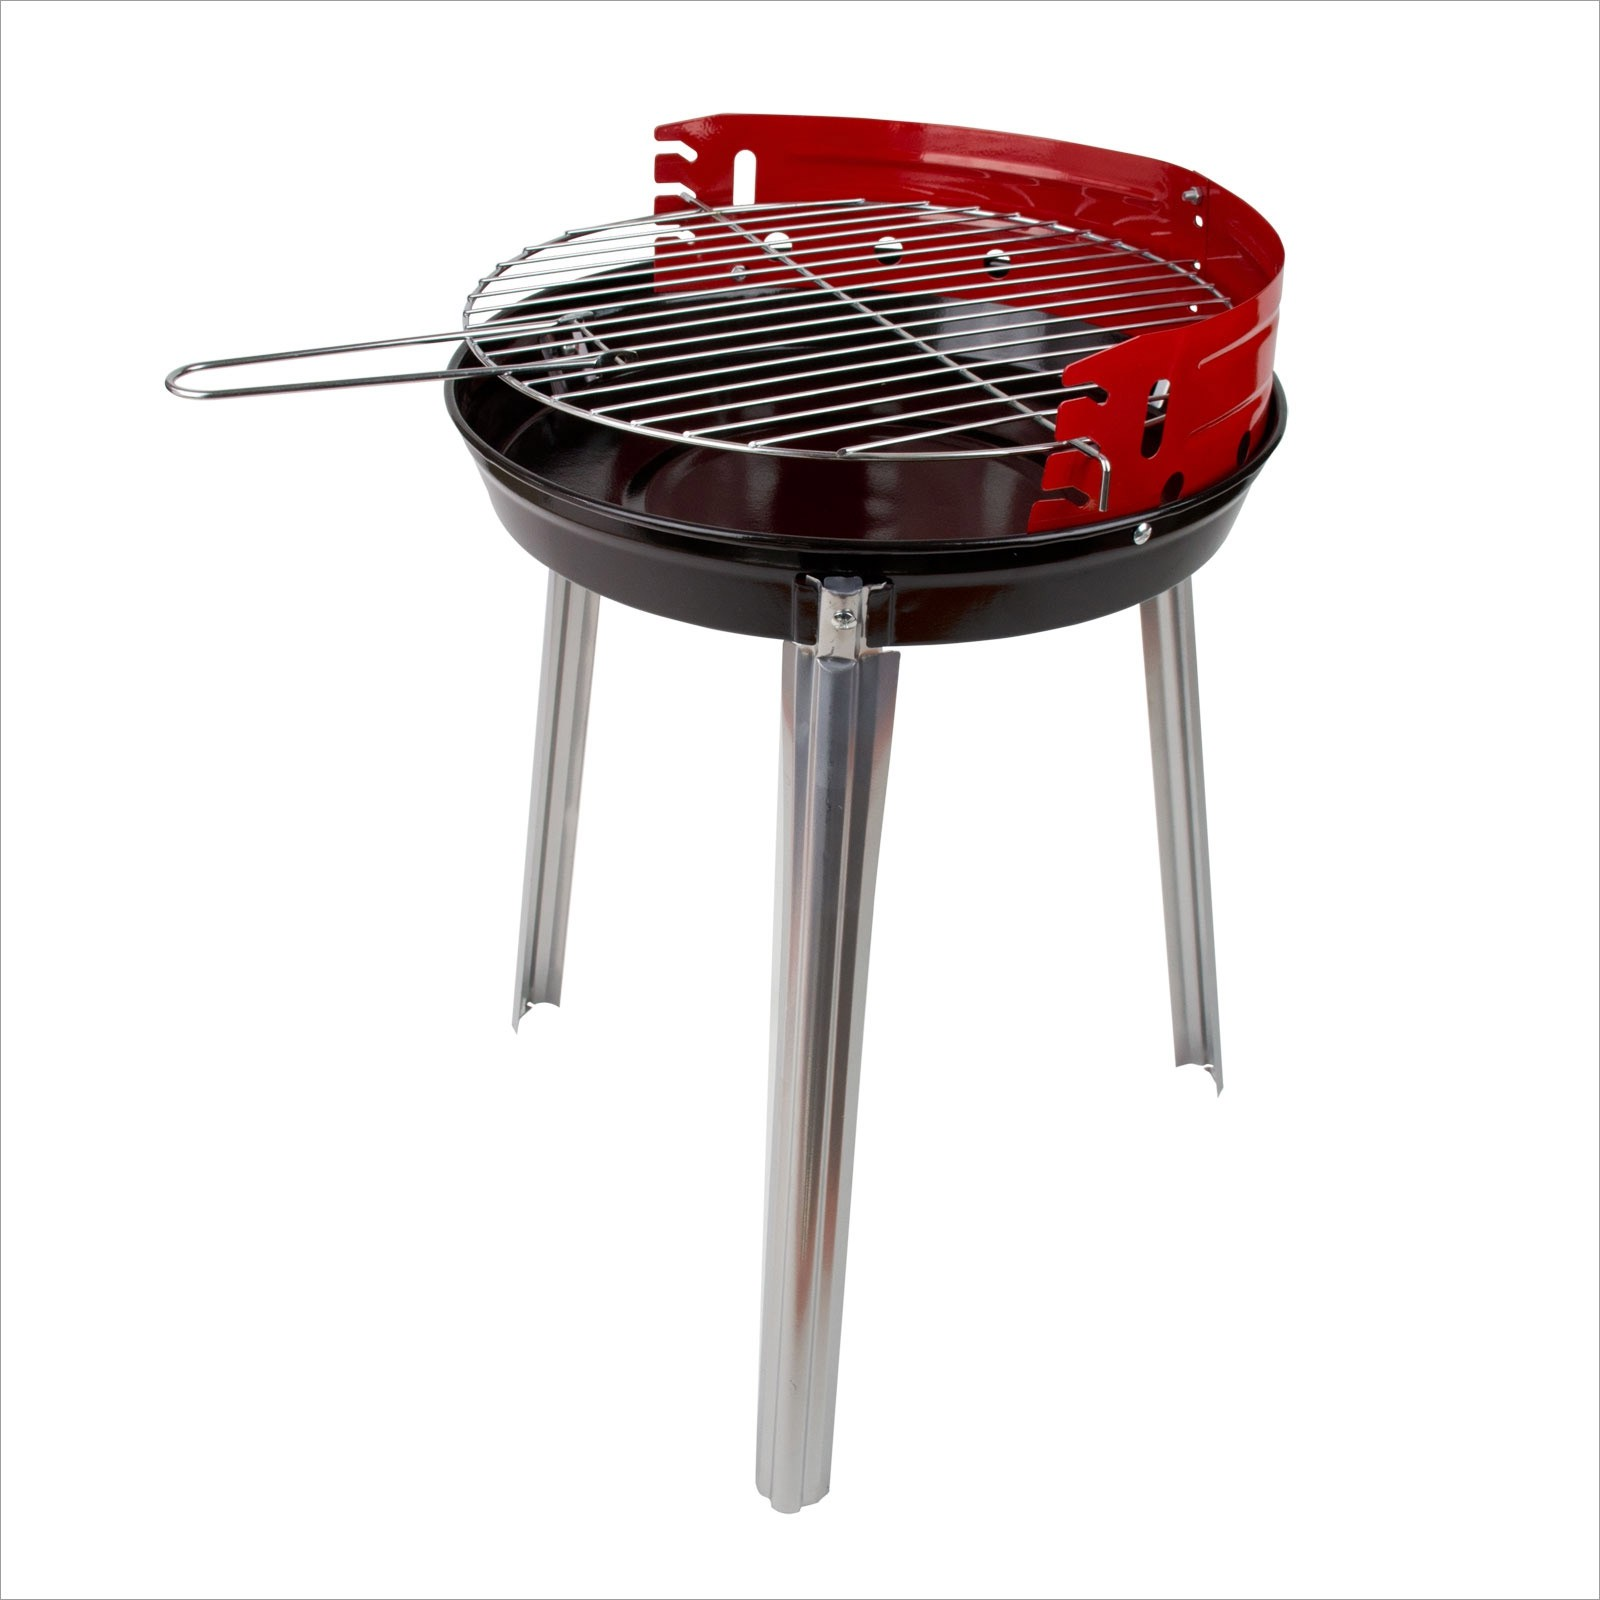 Dema Holzkohle Rundgrill Standgrill Dreibein Grill Barbecue BBQ Lyon Ø 34 cm rot 17517